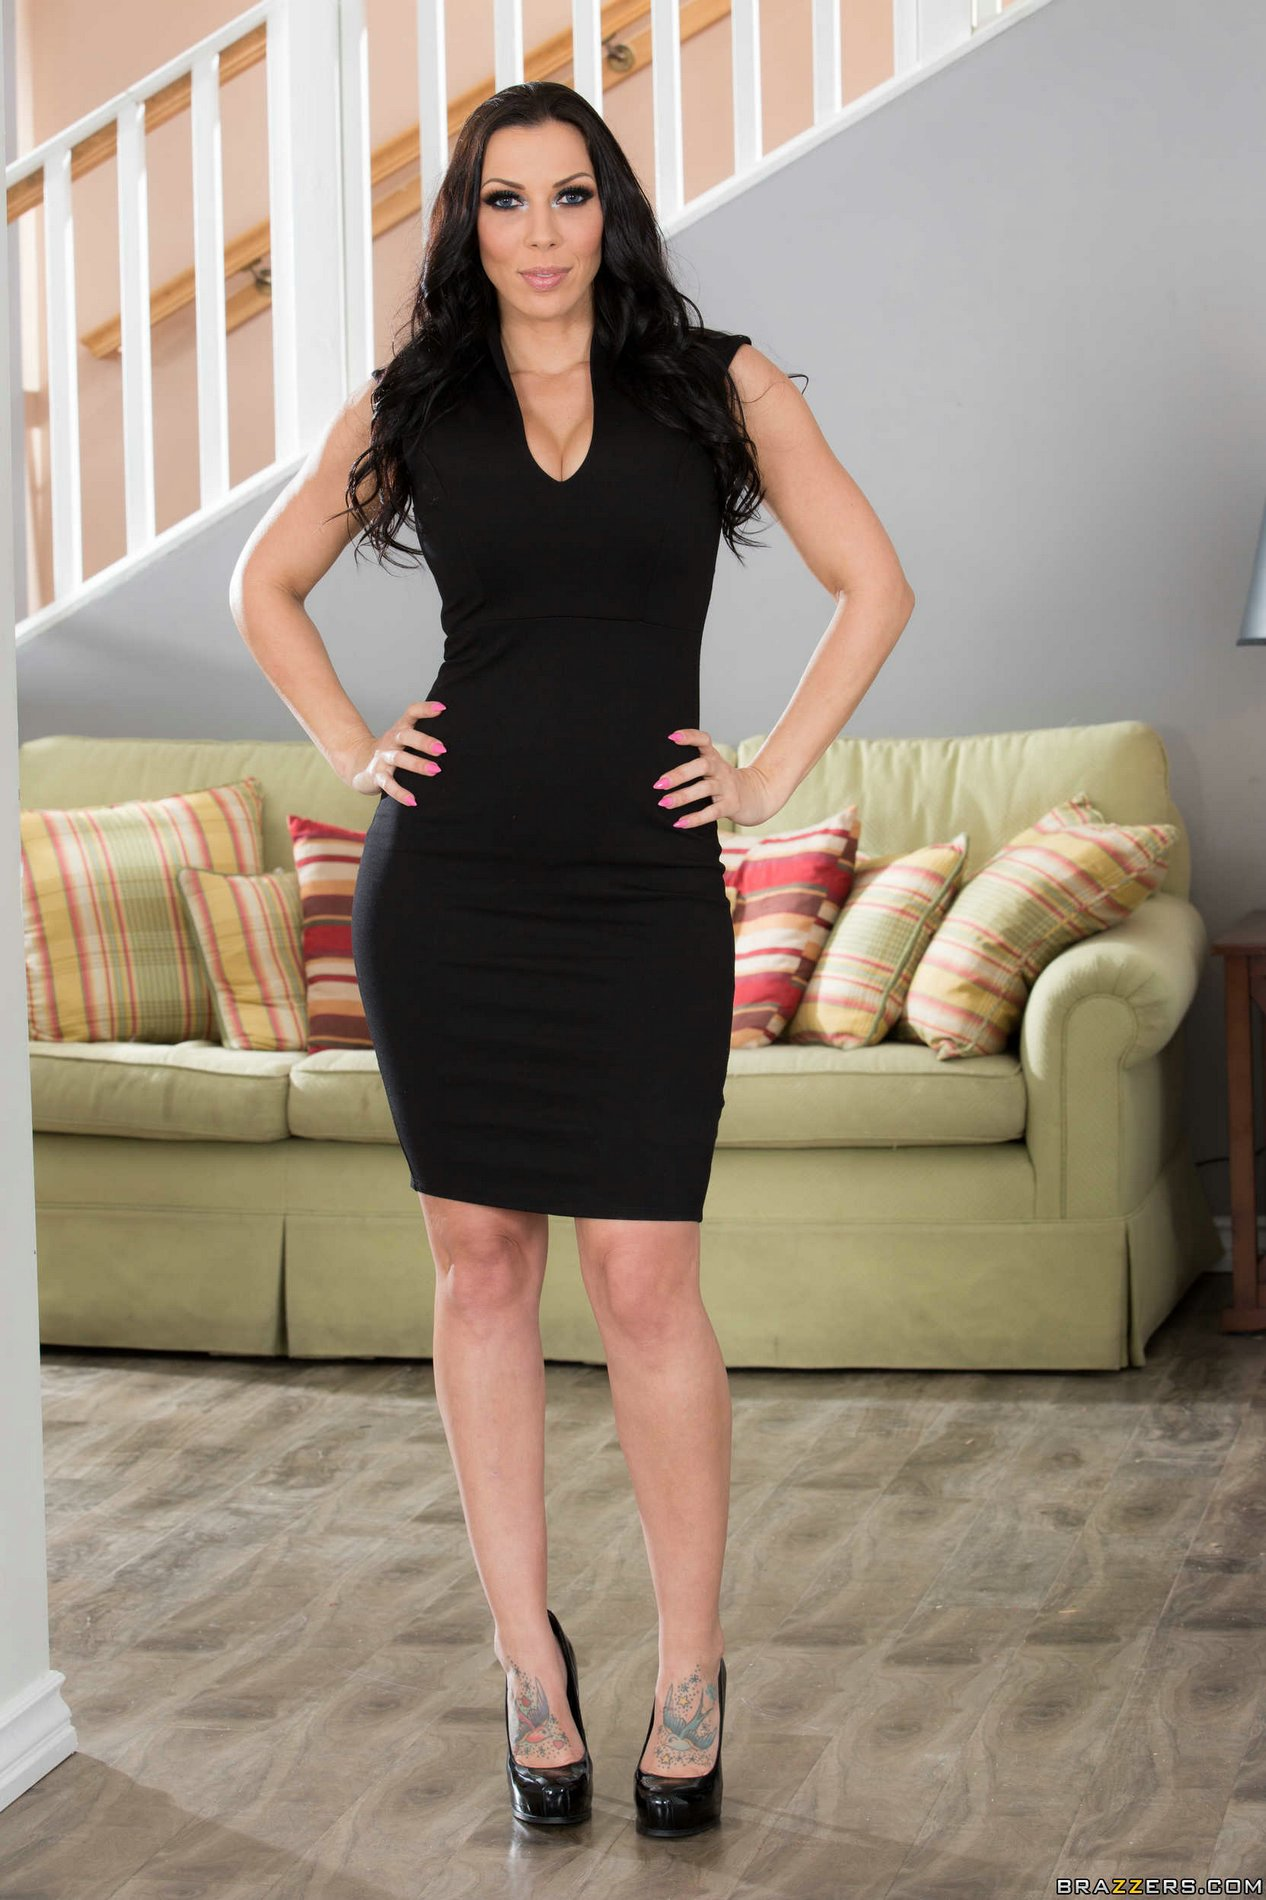 Rachel Starr in black dress and high heels strips for camera - My Pornstar Book